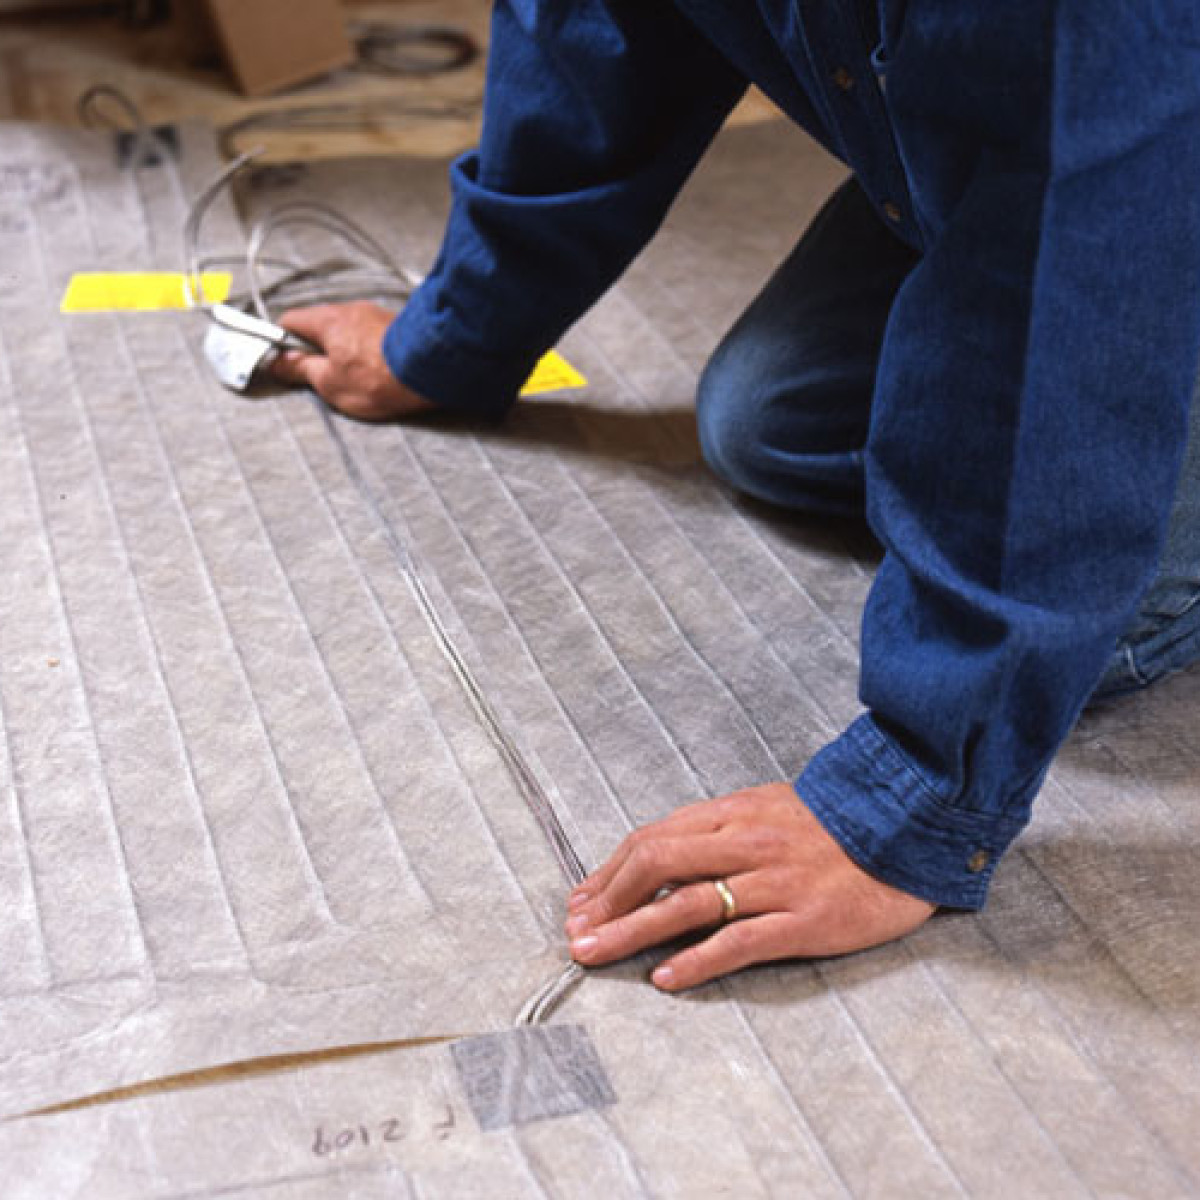 dryfitting-mat-and-lead-position-1200x1200.jpg